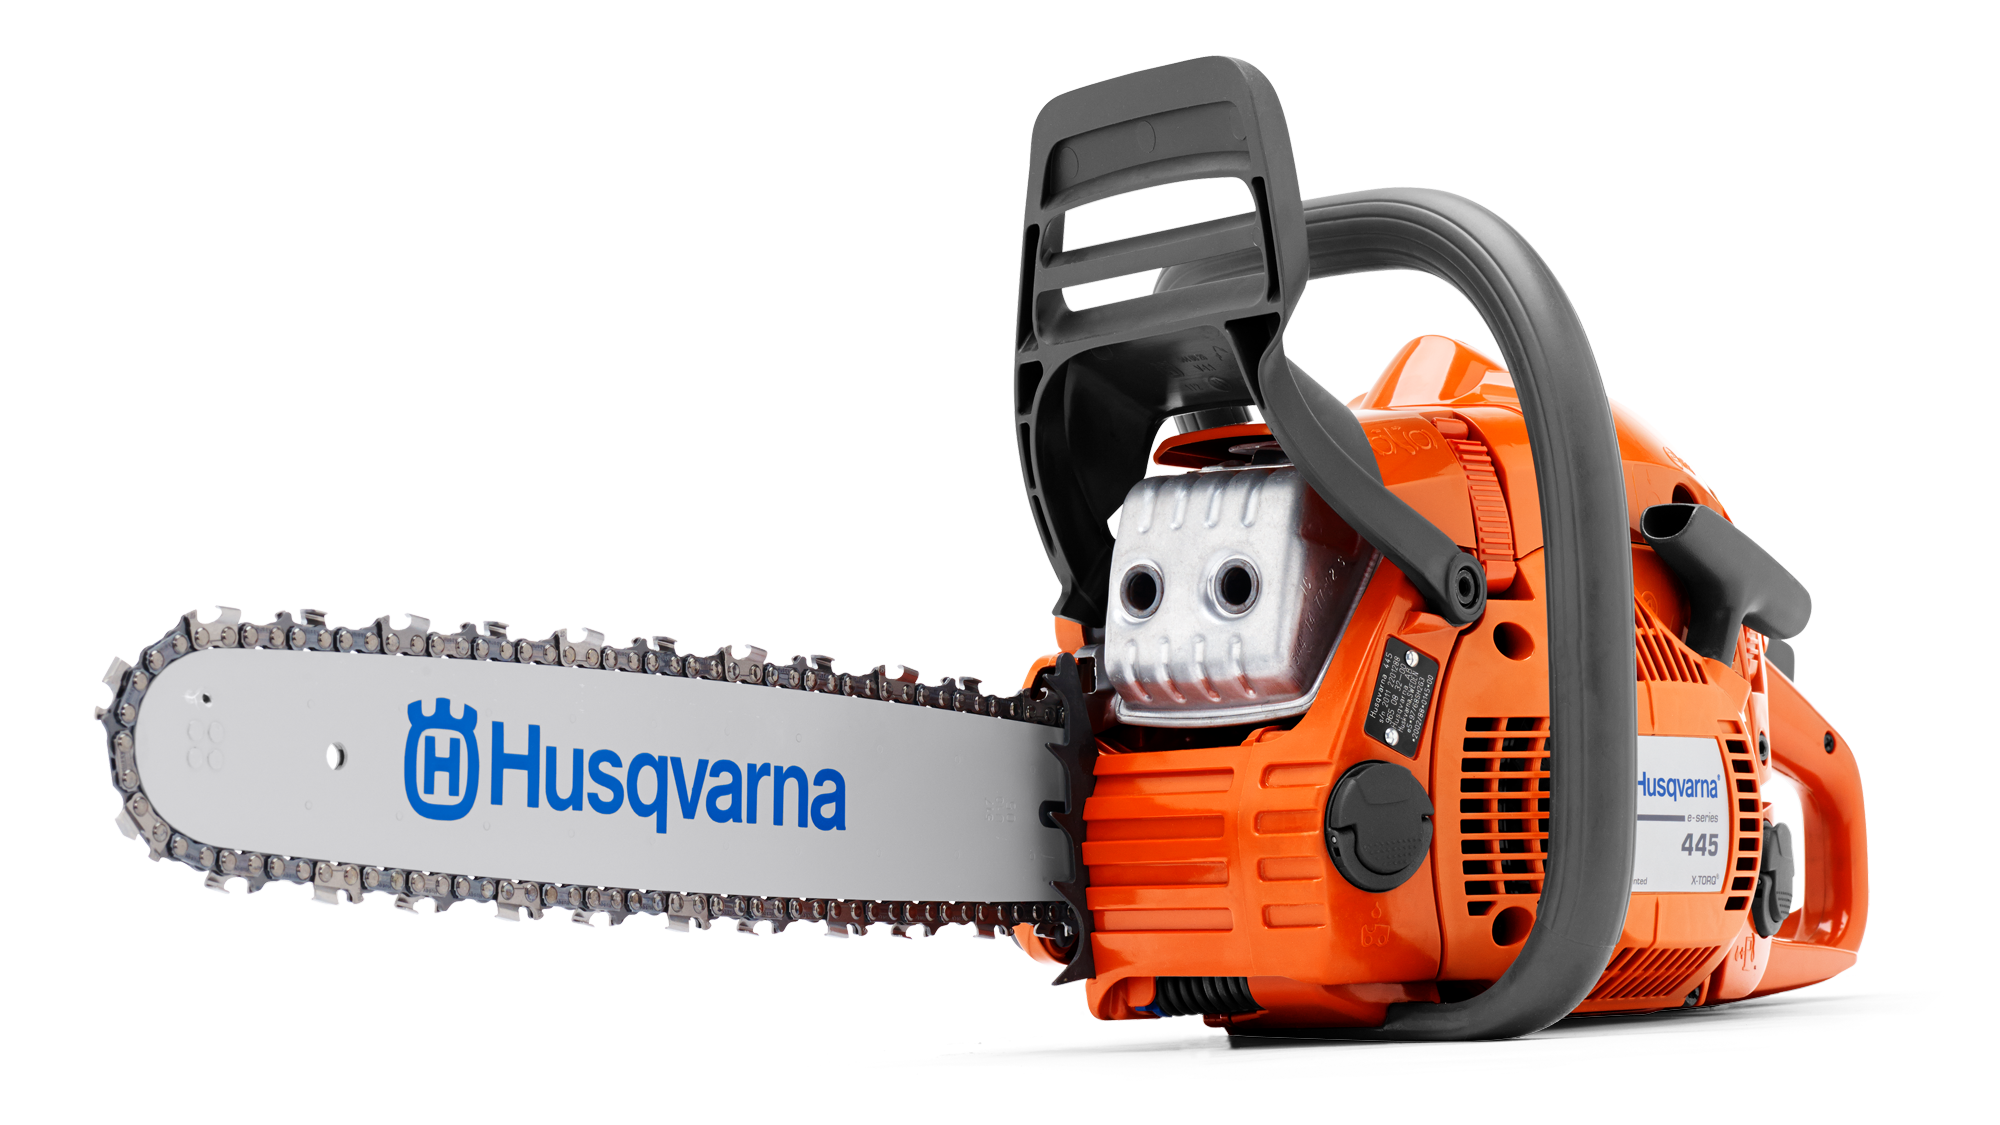 Image for 445e II Gas Chainsaw                                                                                                             from HusqvarnaB2C